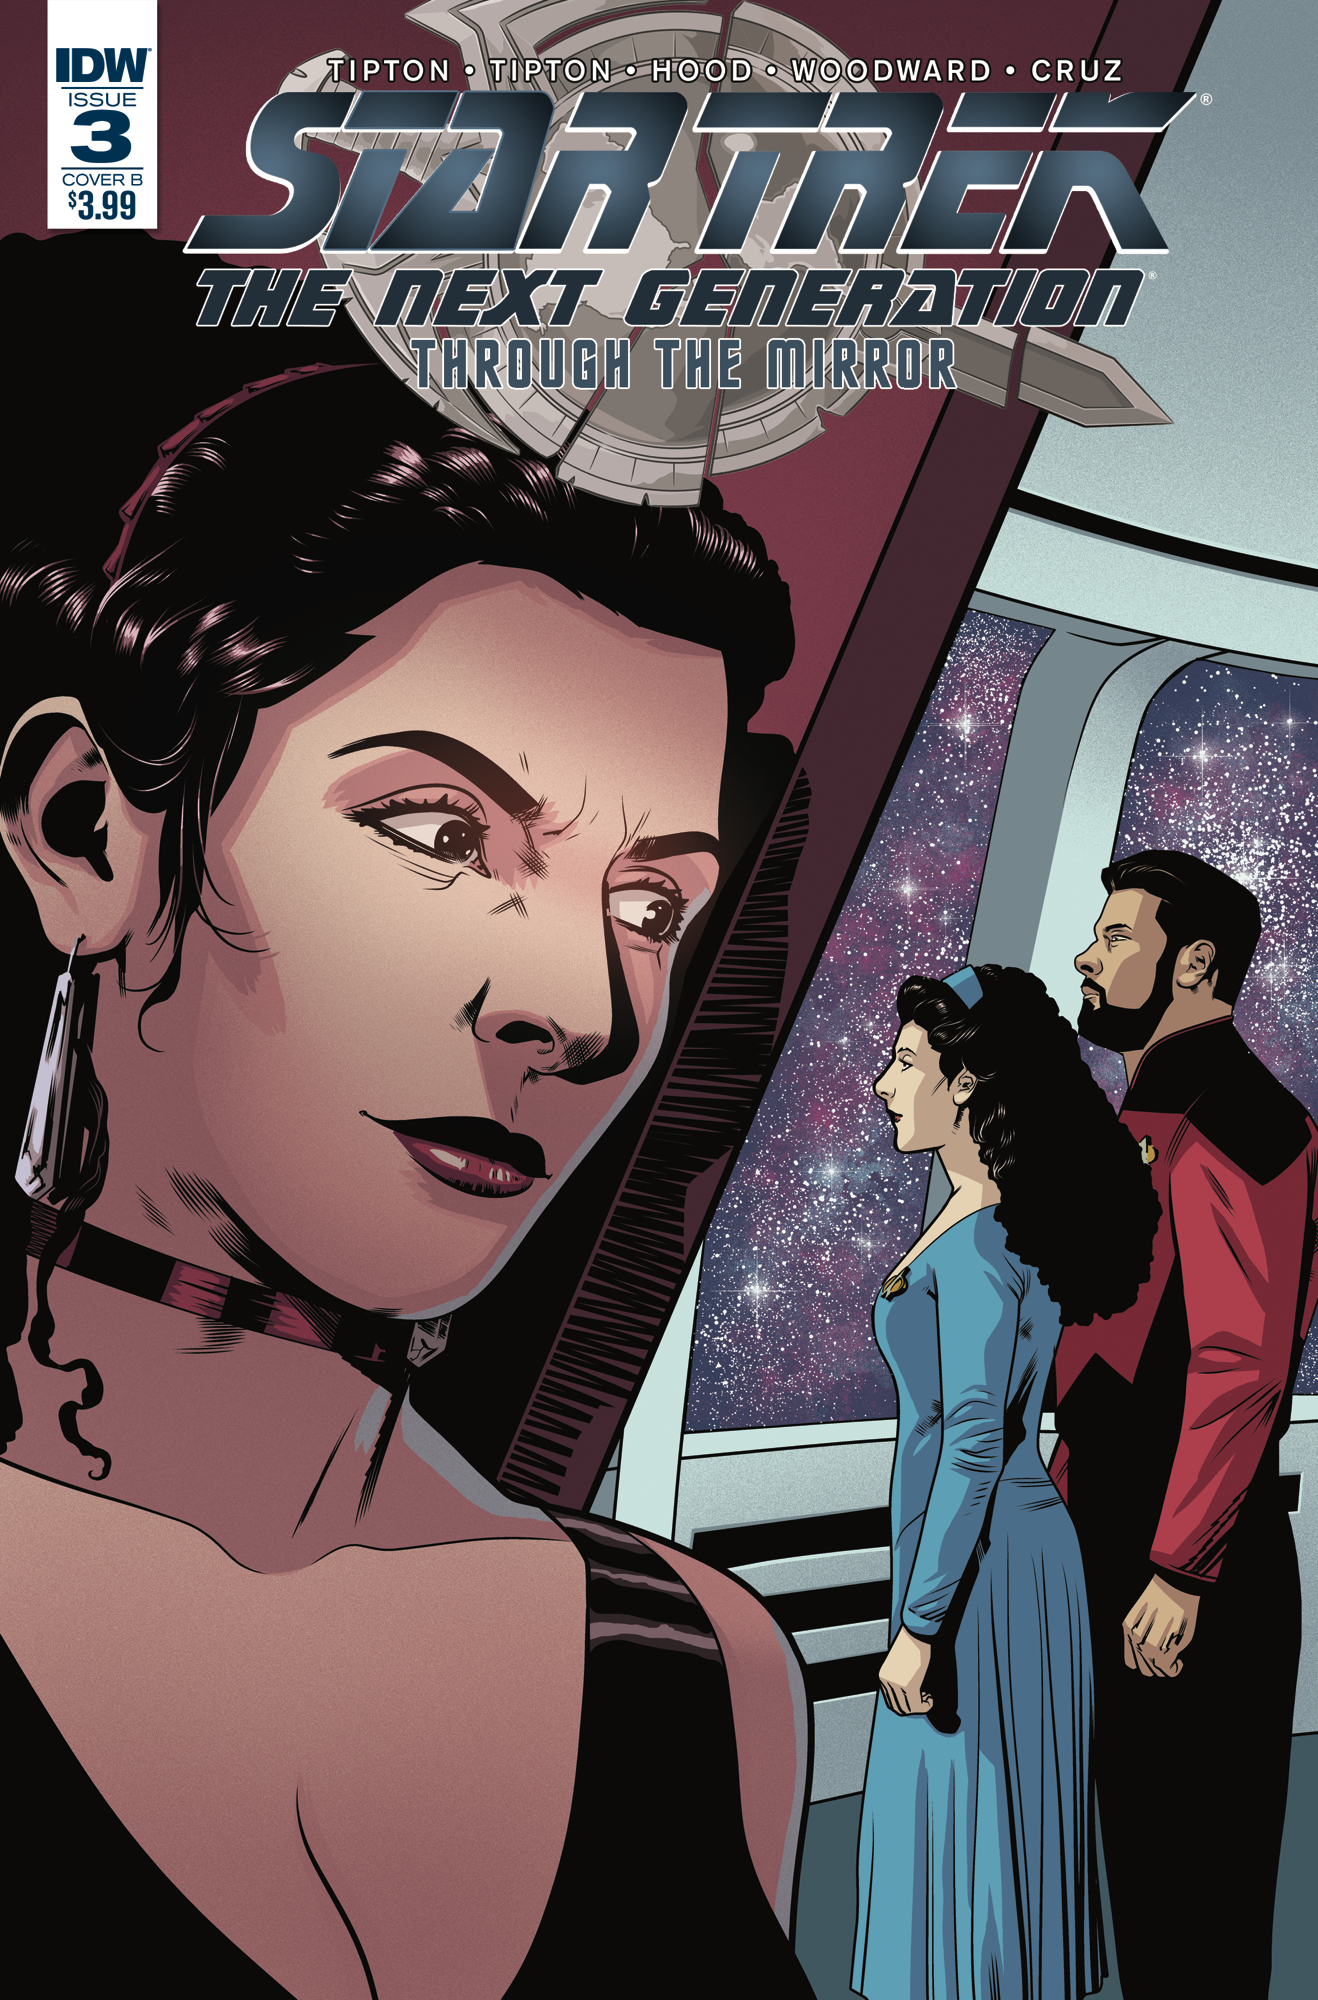 STAR TREK TNG THROUGH THE MIRROR #3 CVR B HOOD